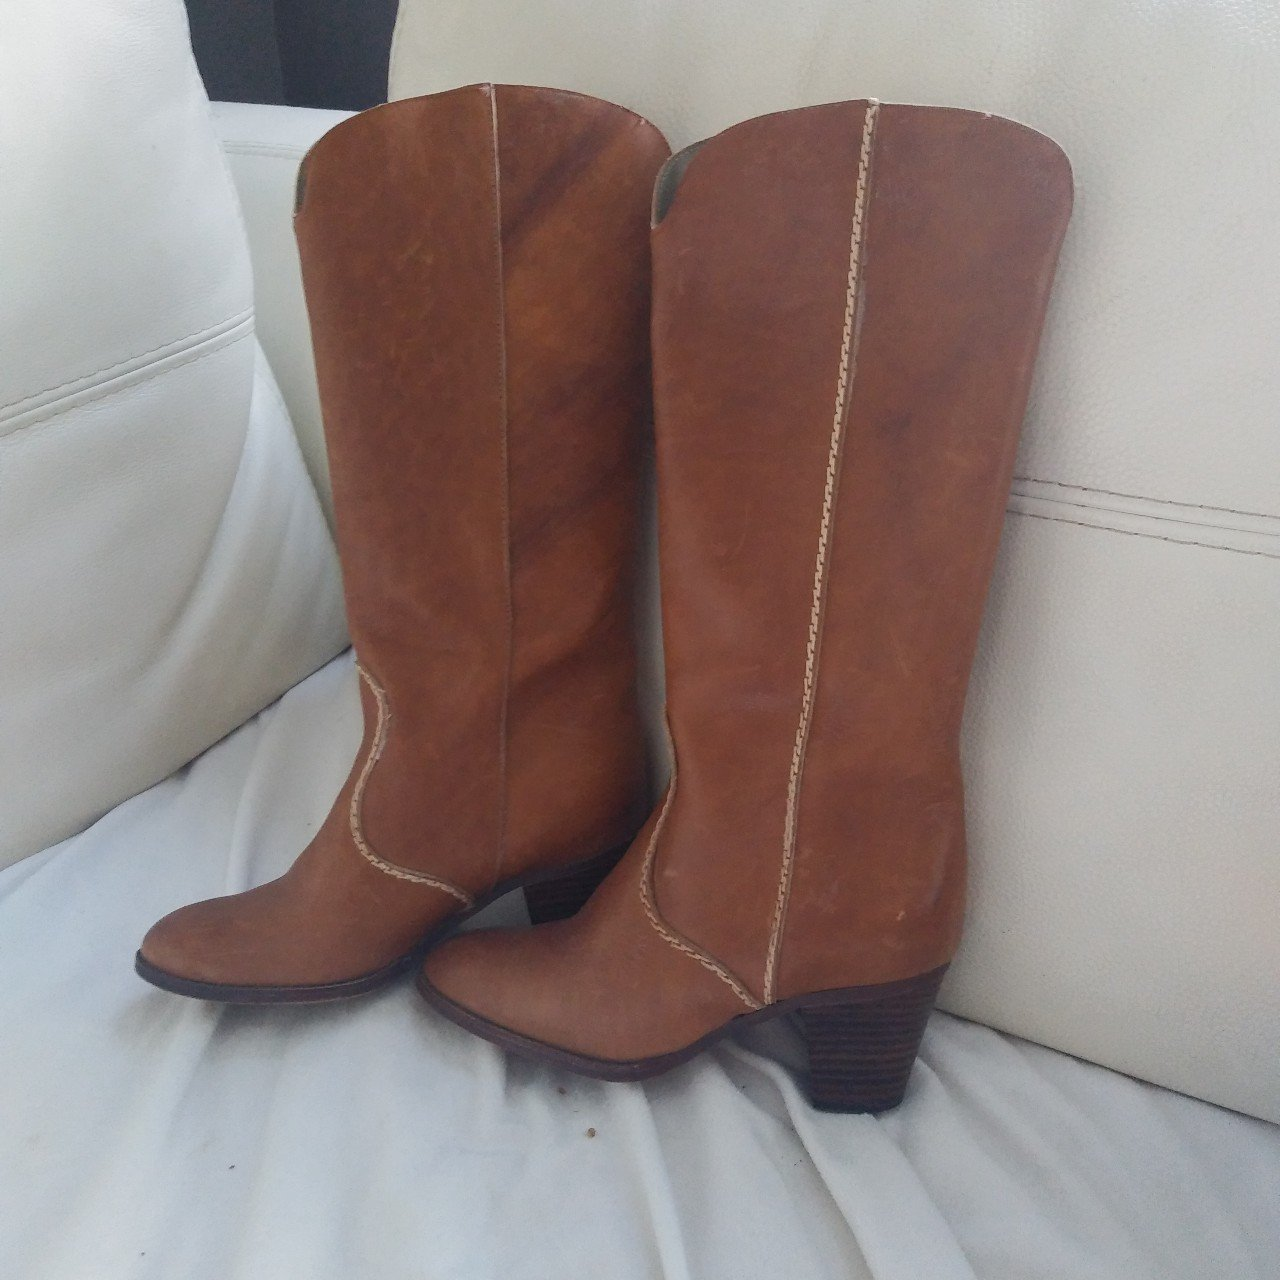 86db91daa Made in canada leather boots brand unknown as they are but depop jpg  1280x1280 Canada leather